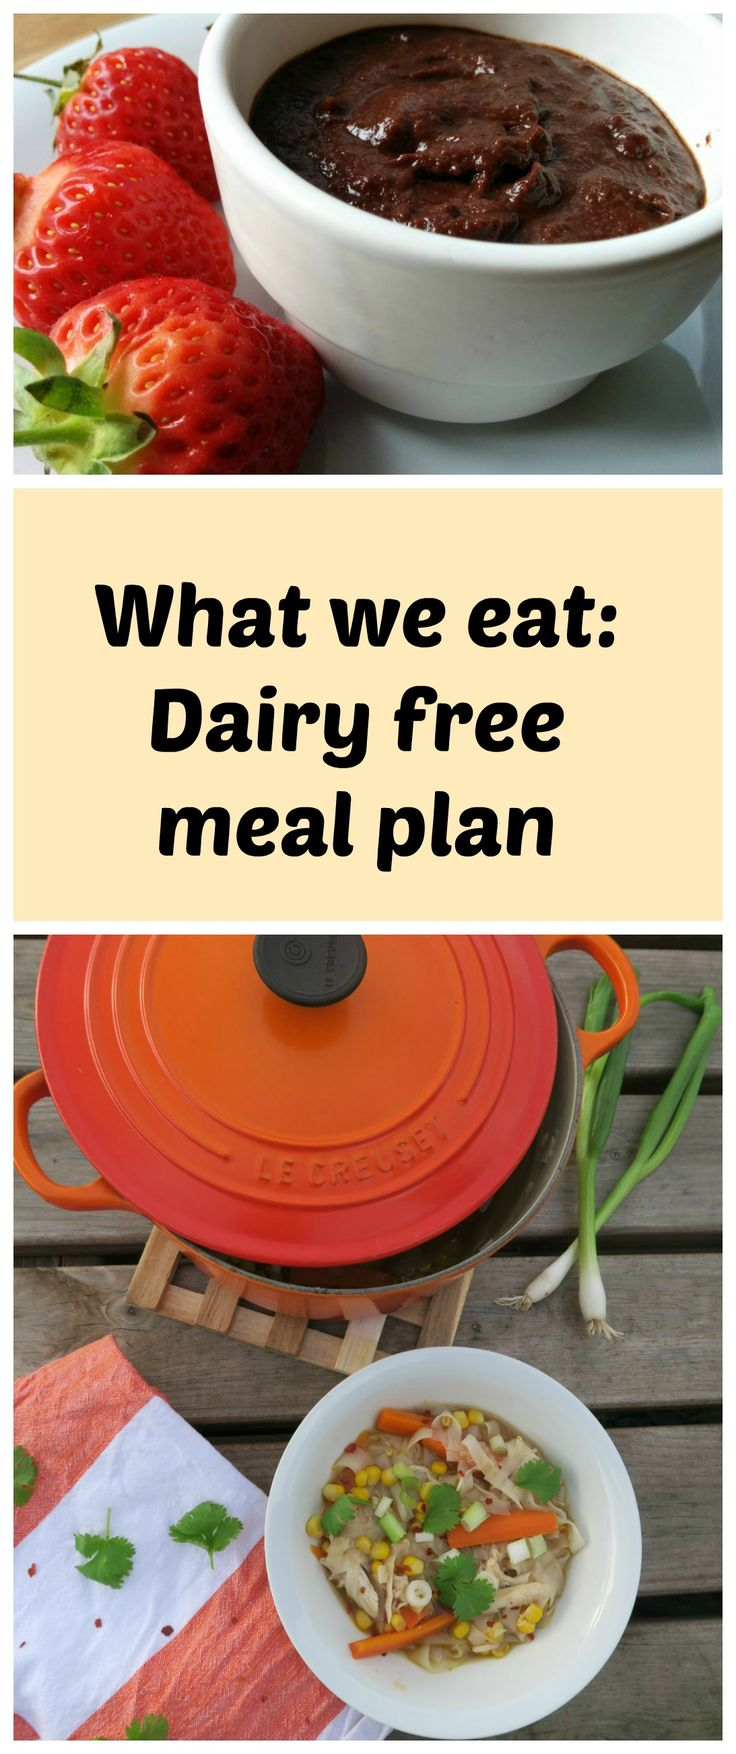 Meal planning is the best way to save money, stop waste and create safe food for your family. Find out all the allergy friendly meals we eat and get some inspiration from our dairy free meal plan.